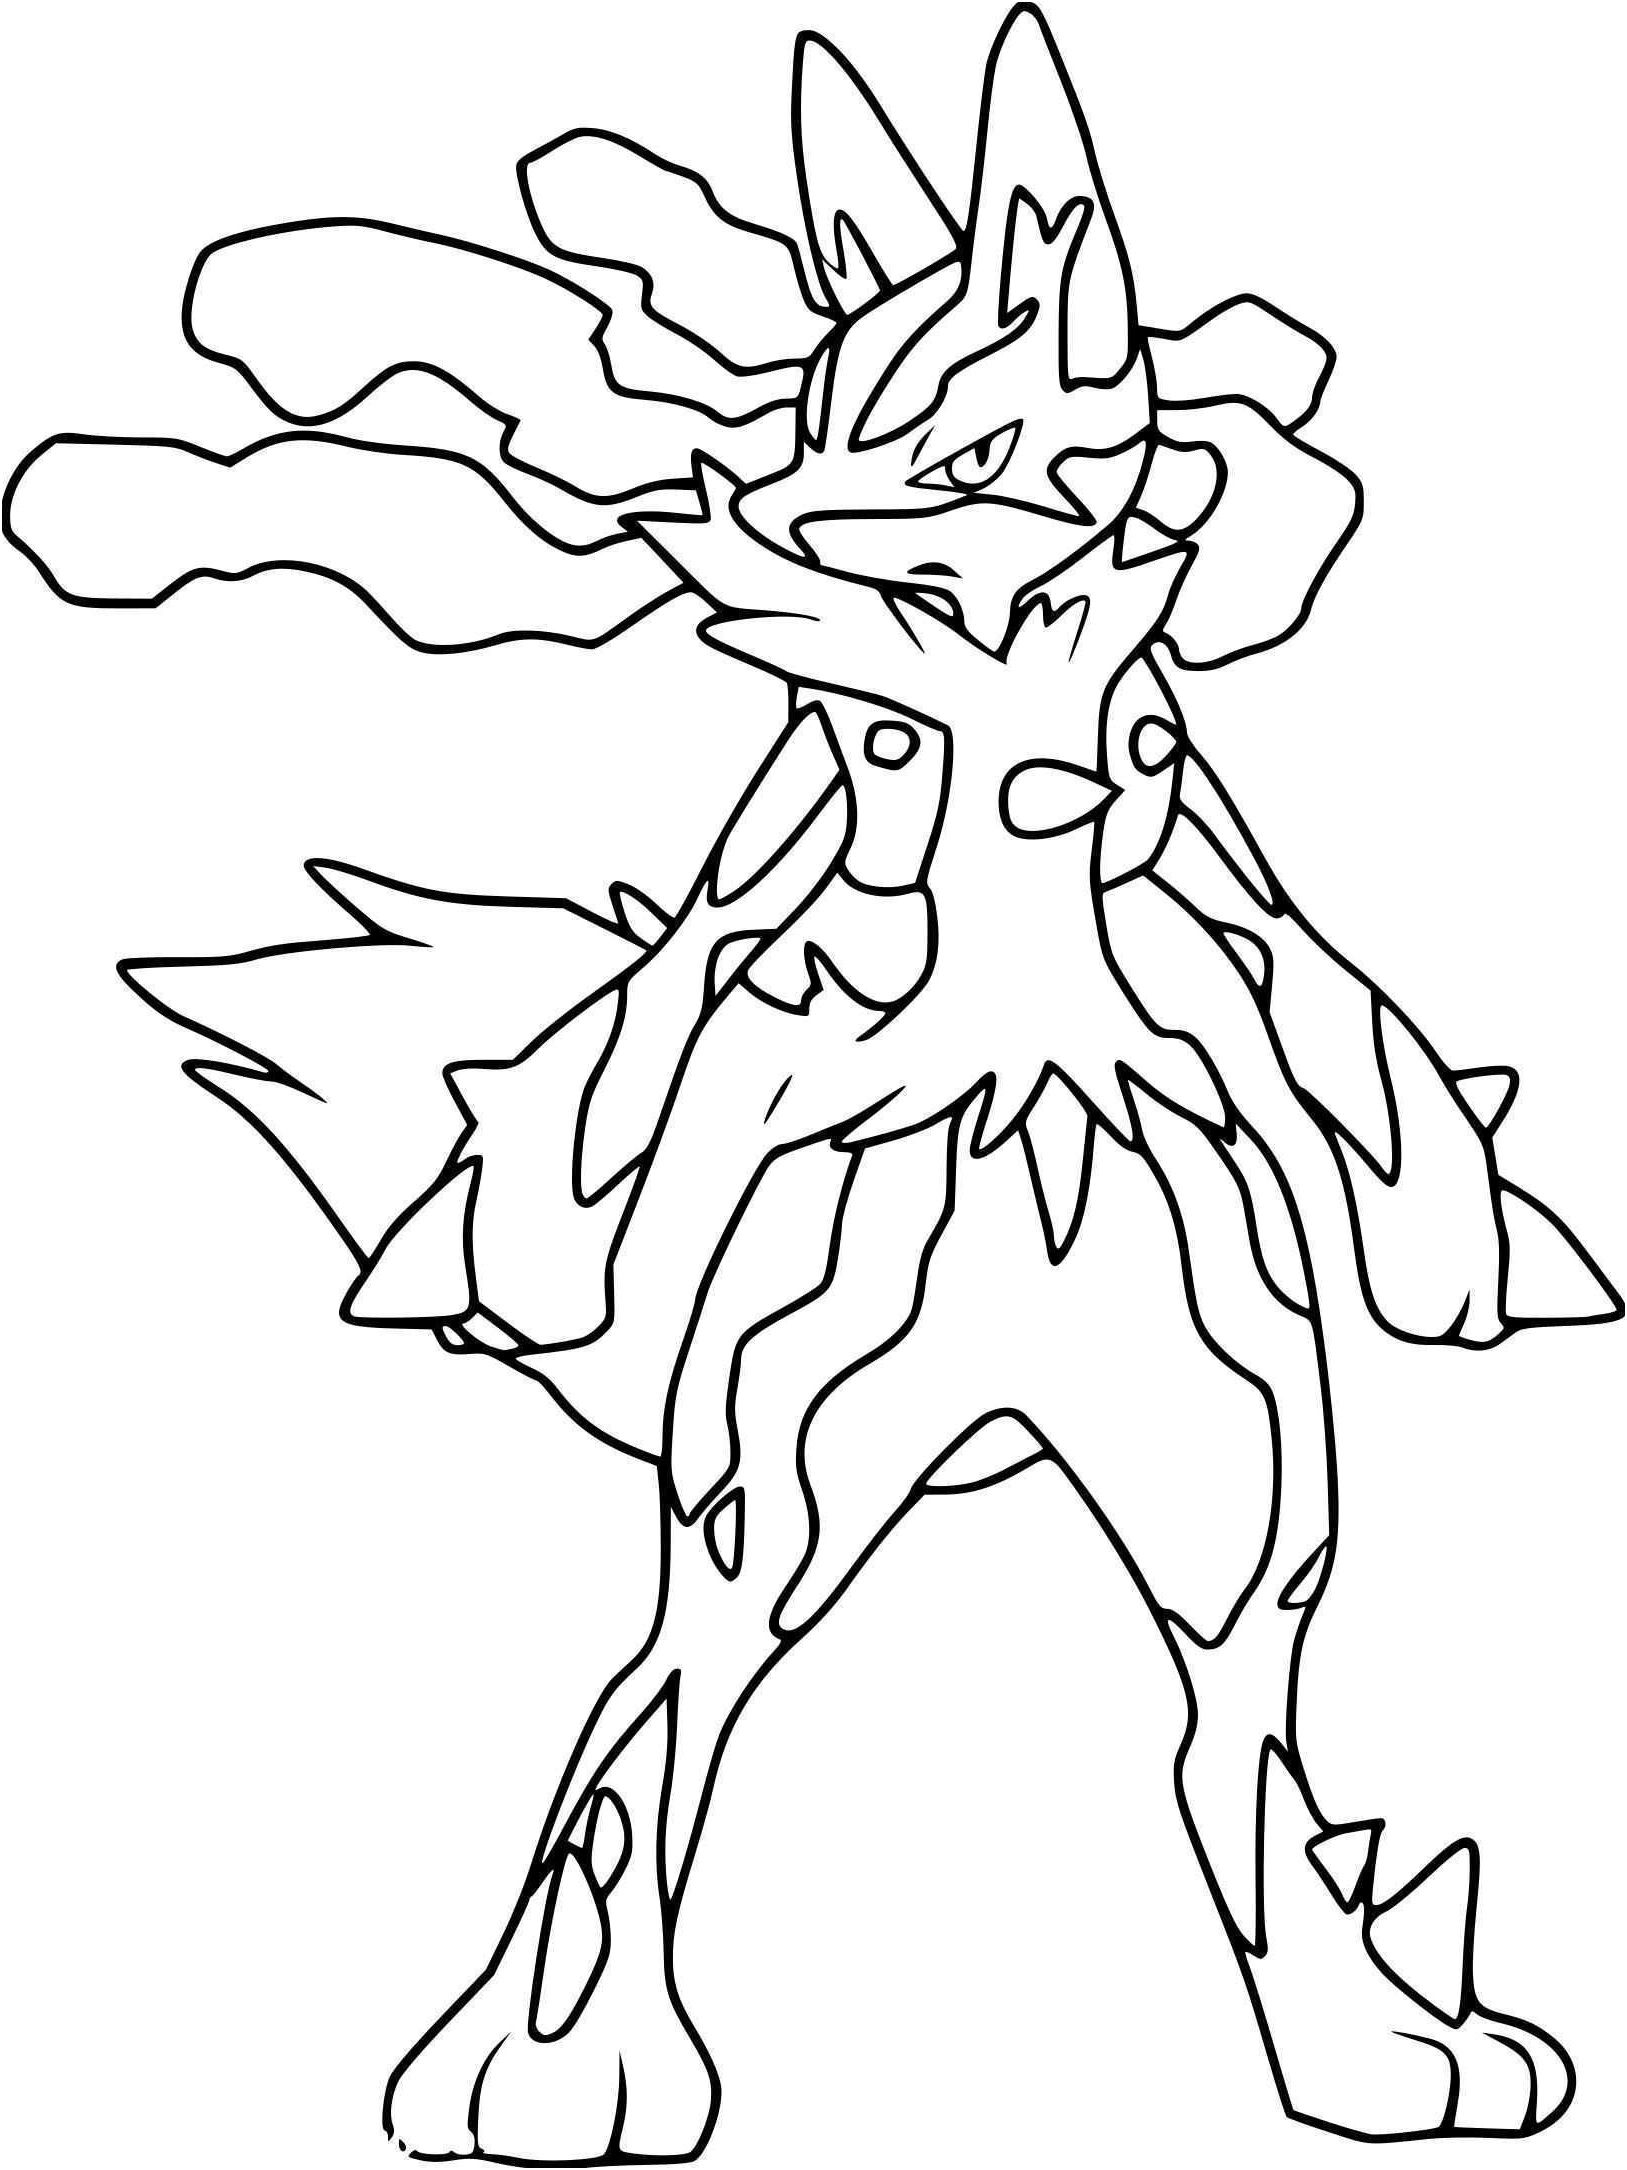 8 Aimable Coloriage Pokemon Mega Evolution Stock Coloriage Pokemon Dessin Pokemon Dessin Pokemon A Imprimer